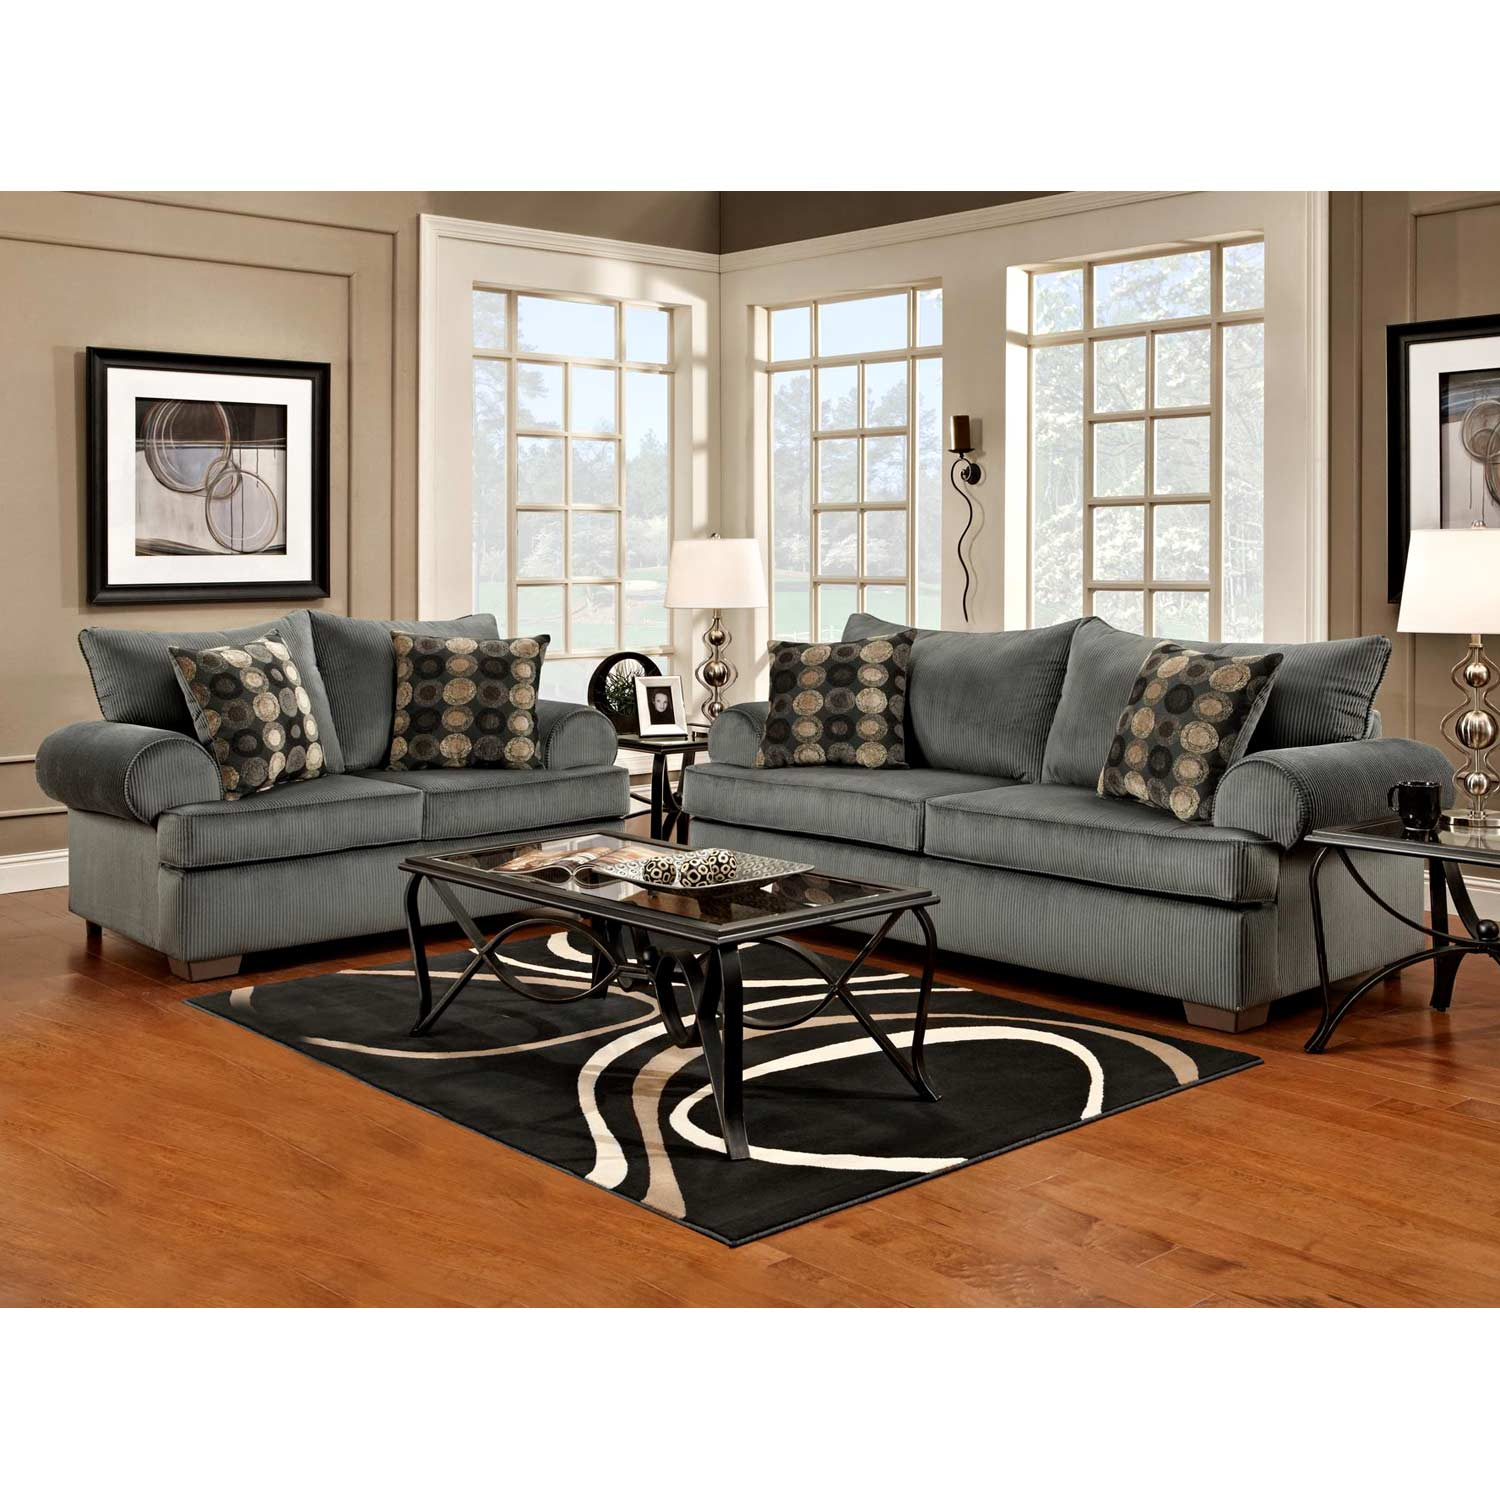 Wyatt Round Arm Sofa - Marshall Steel Fabric - CHF-6403-MS